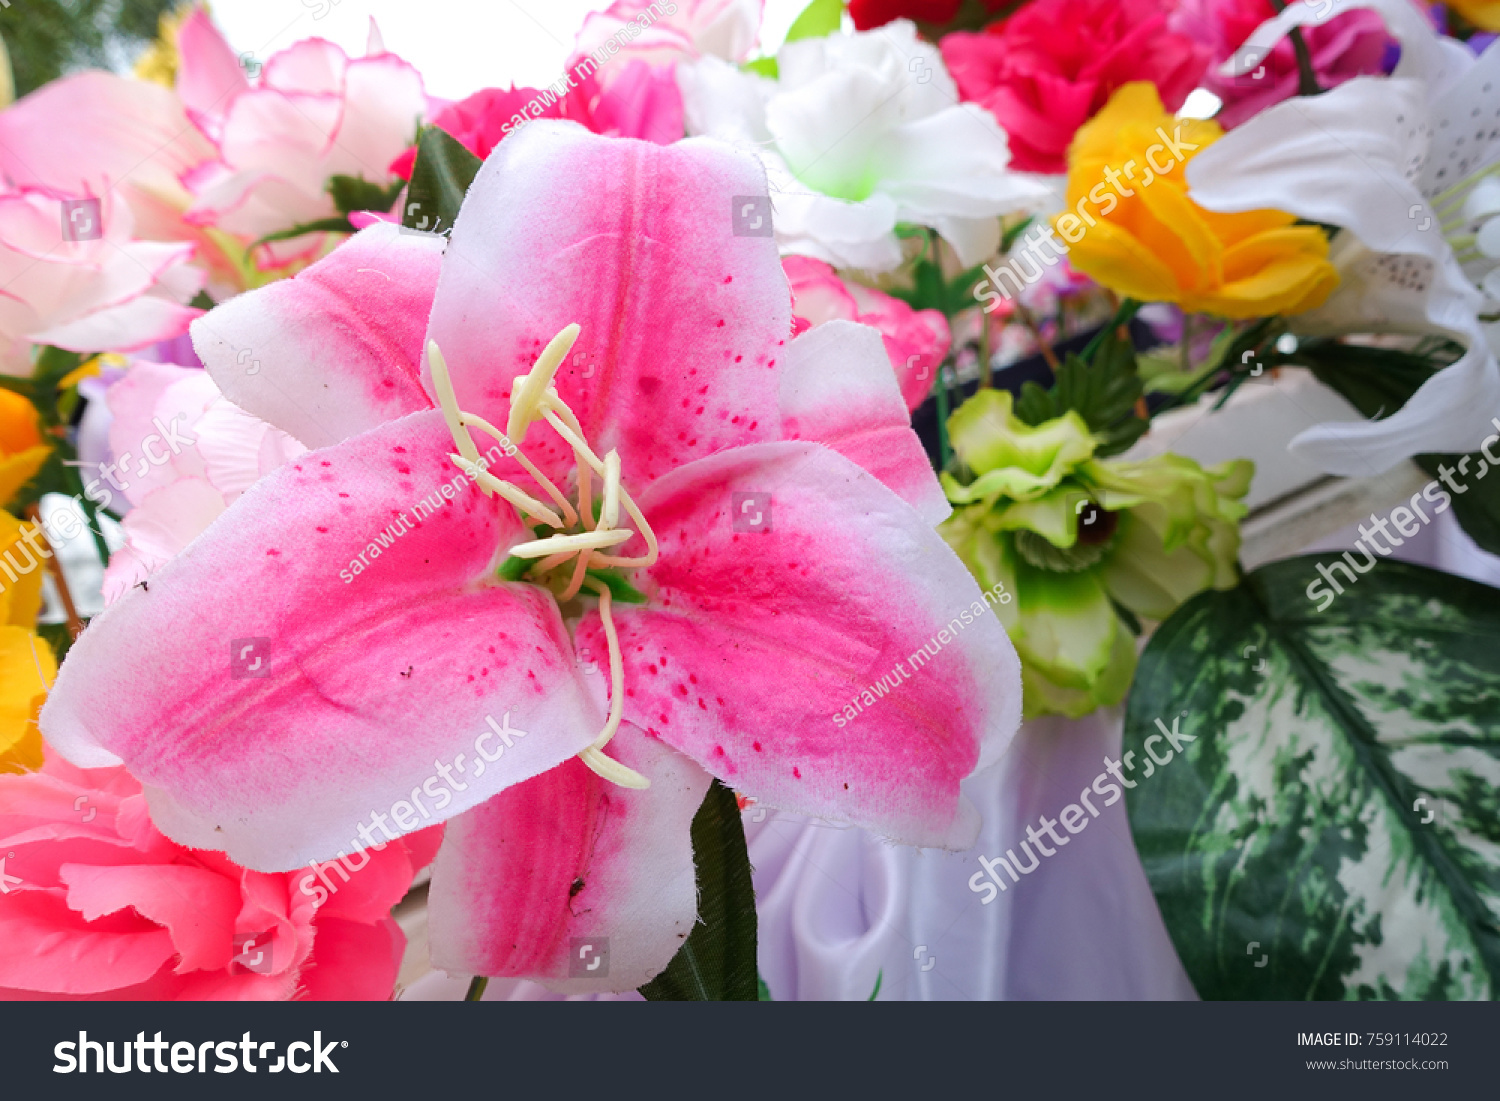 Fake flower floral background rose flowers stock photo 759114022 fake flower and floral background rose flowers made of fabric the fabric flowers bouquet izmirmasajfo Image collections